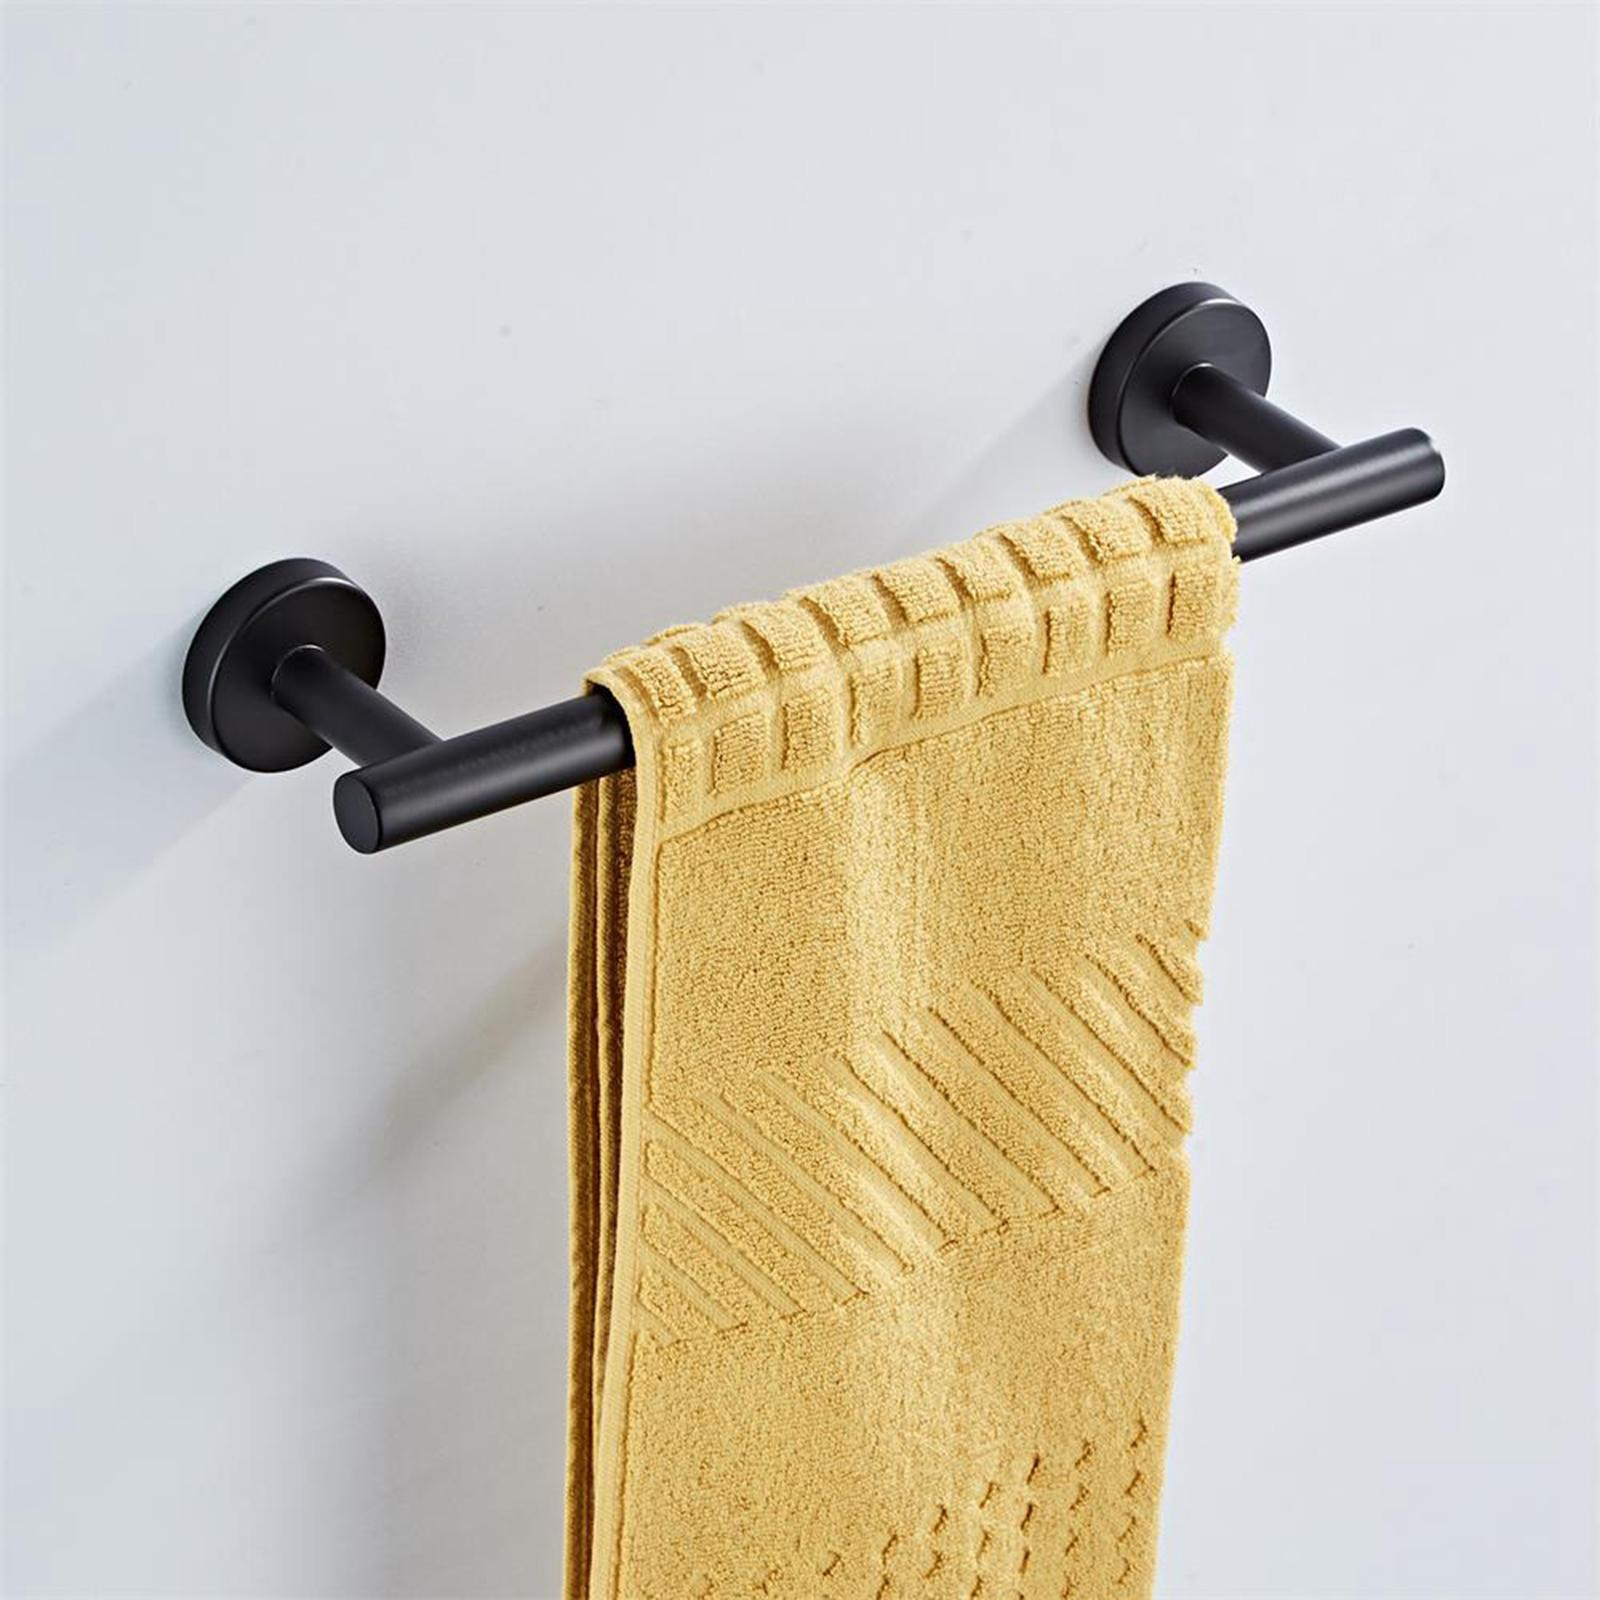 thumbnail 14 - 3x-Brushed-Robe-Hook-Toilet-Paper-Holder-12-034-Hand-Towel-Bar-Hardware-Set